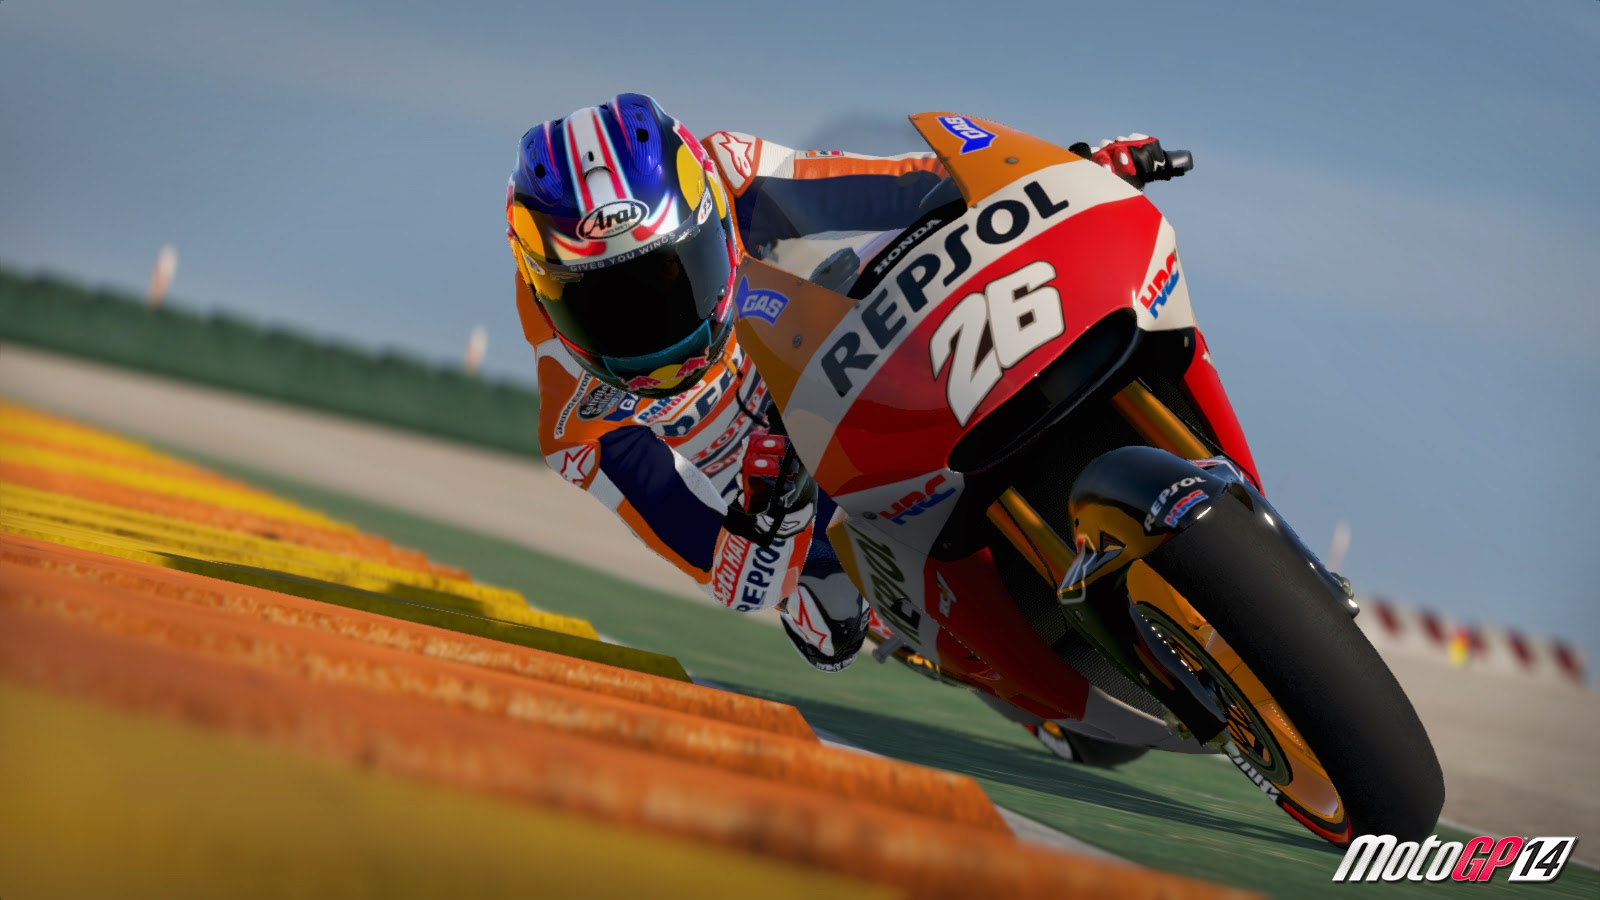 MotoGP 14 - PC Review | Chalgyr's Game Room